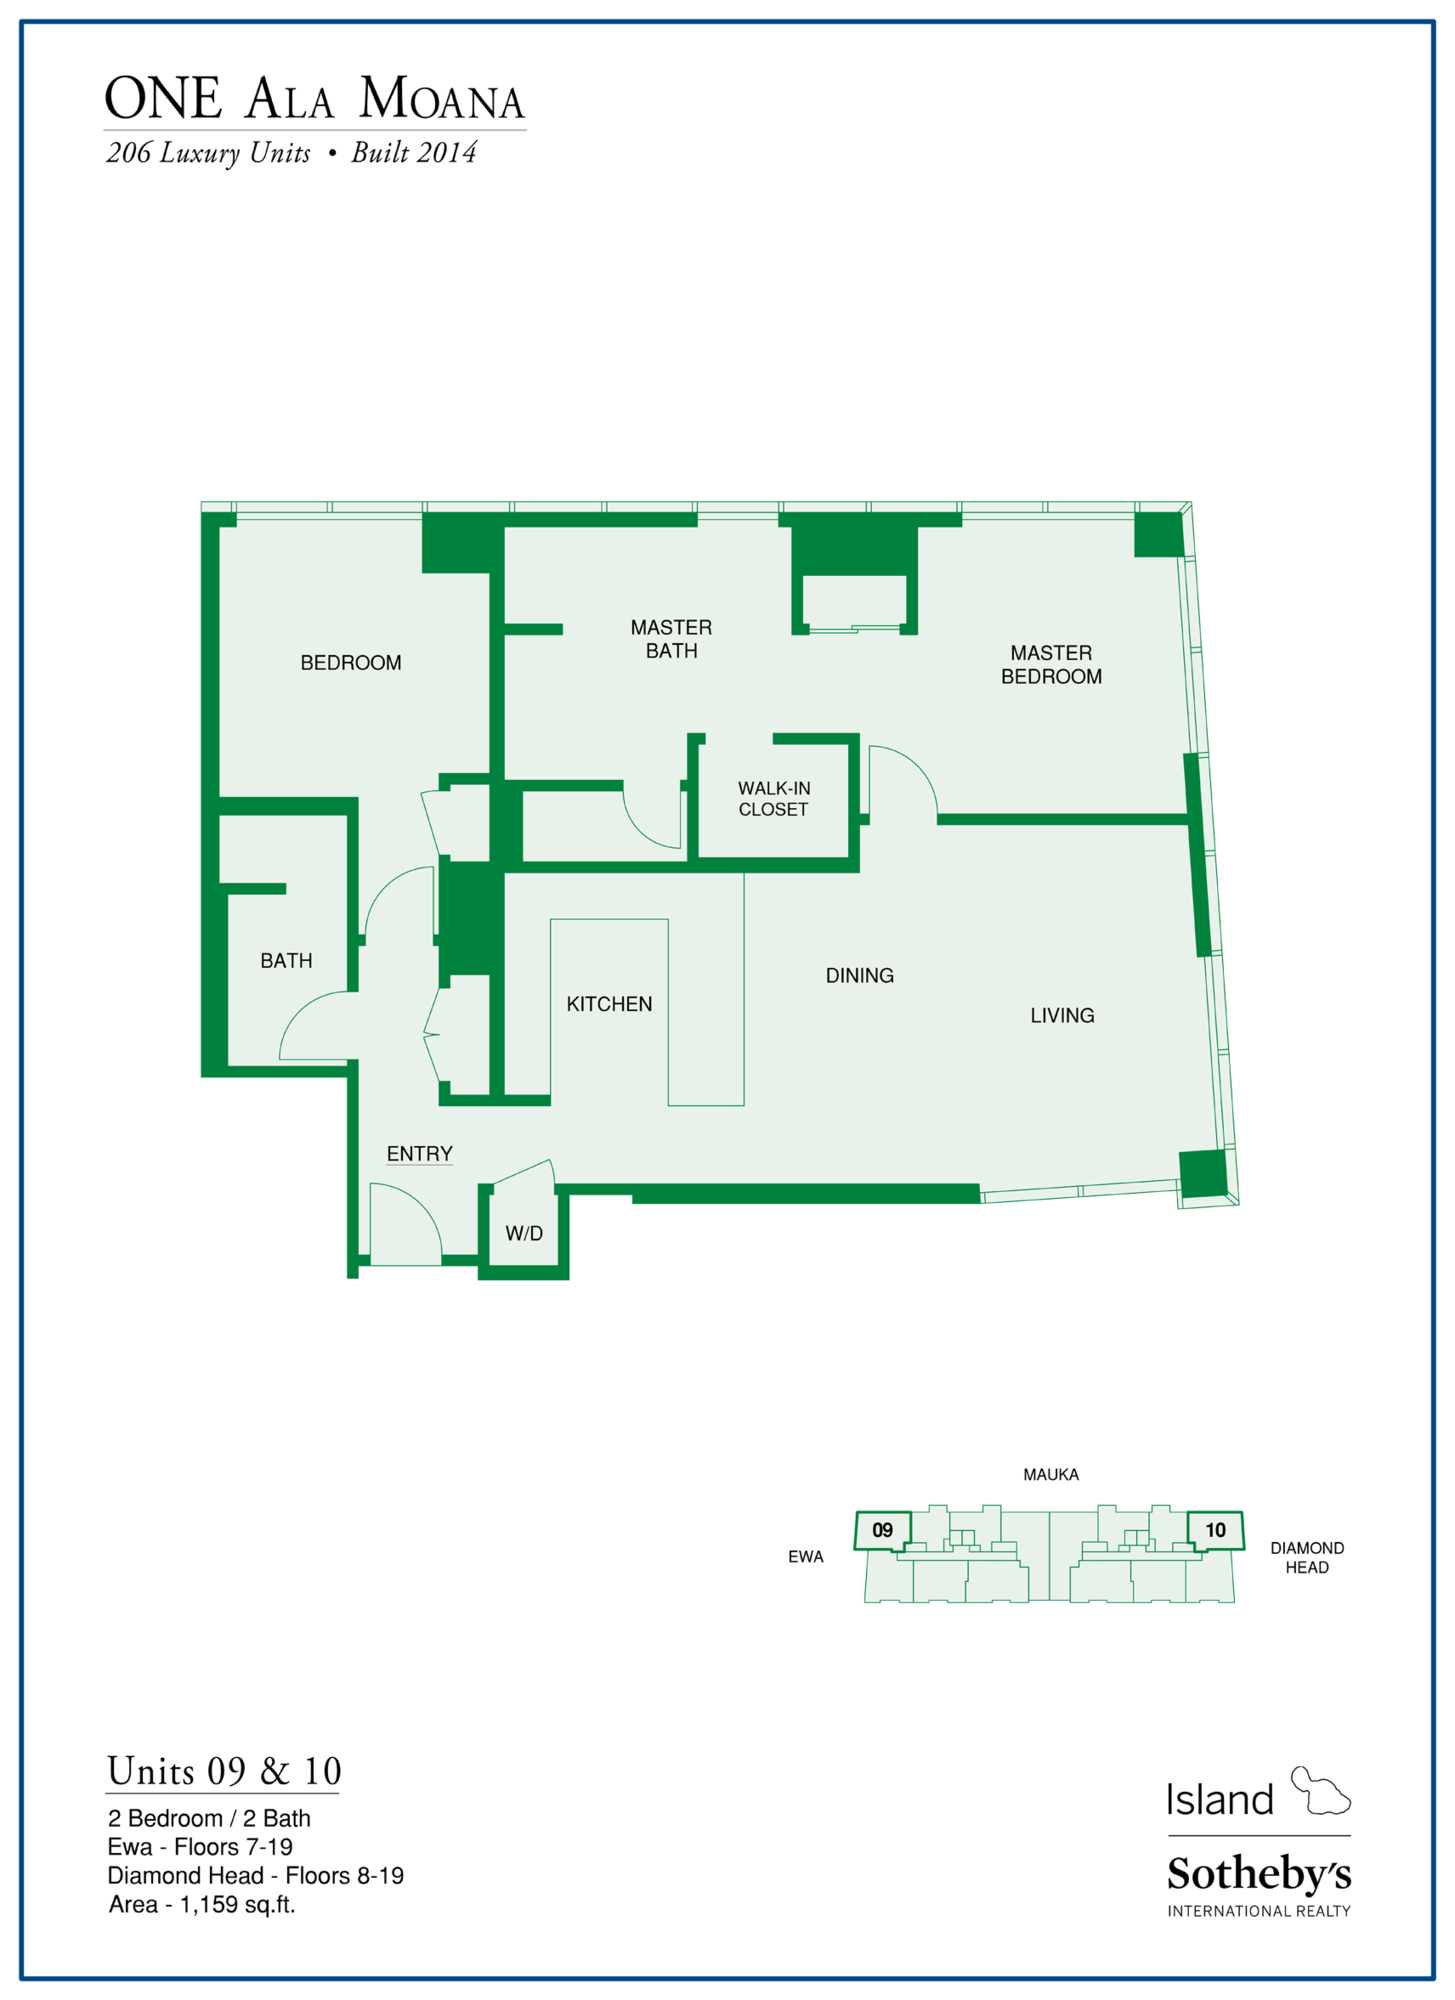 one ala moana floor plan stack 9